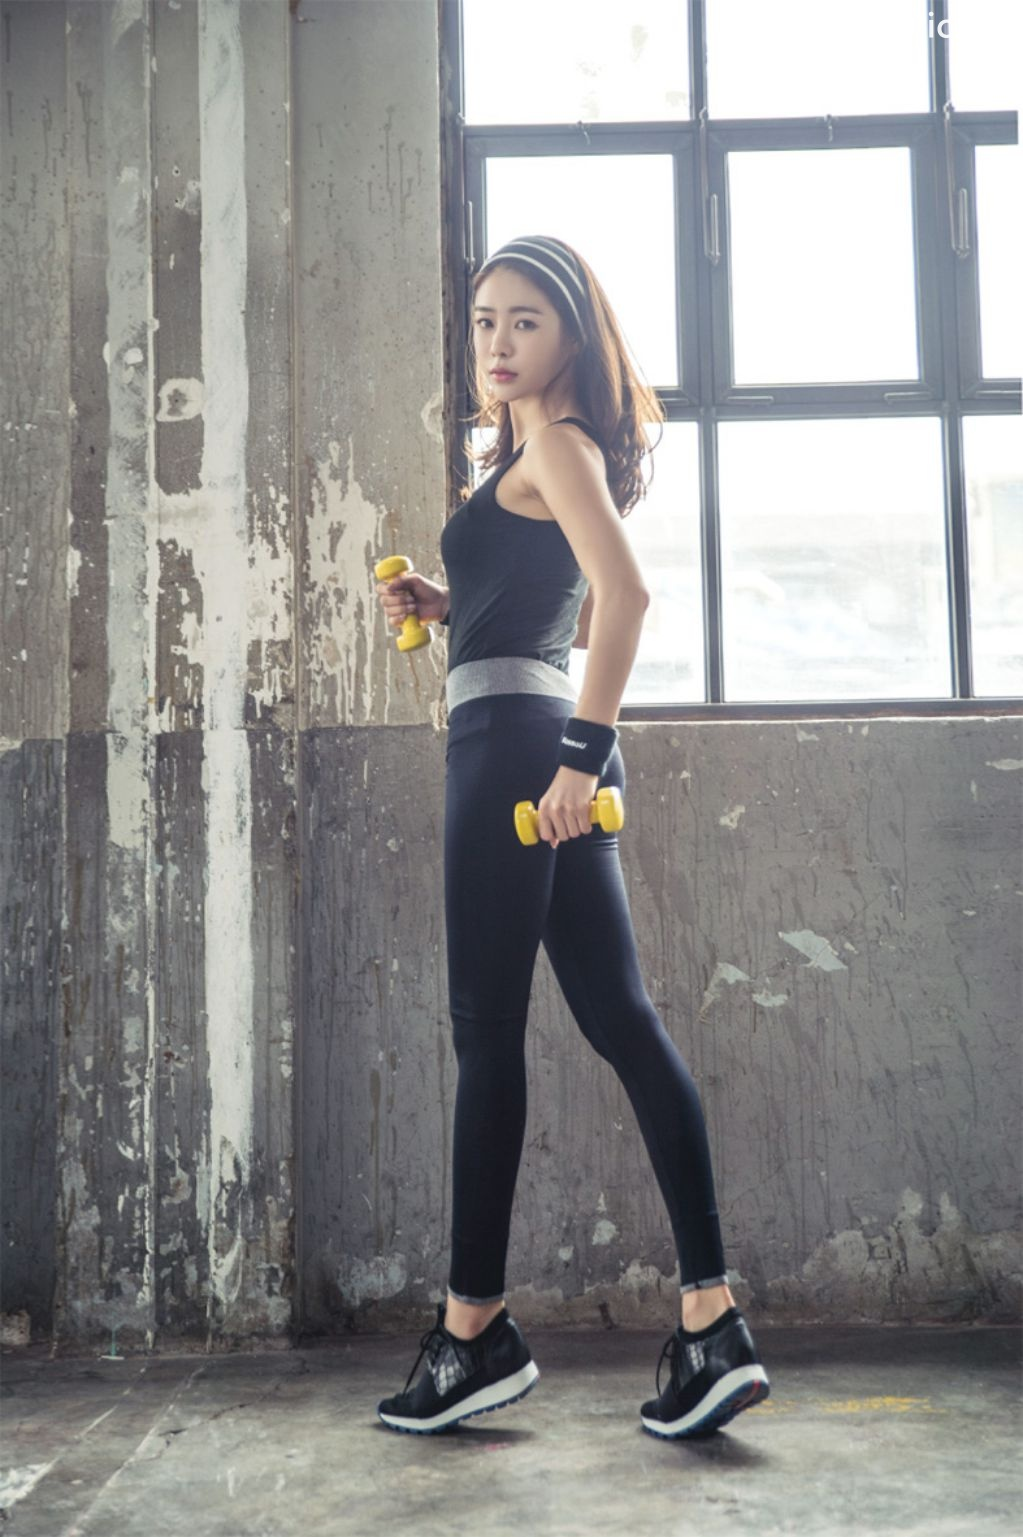 Image Korean Beautiful Model - An Seo Rin - Fitness Fashion Photography - TruePic.net - Picture-4